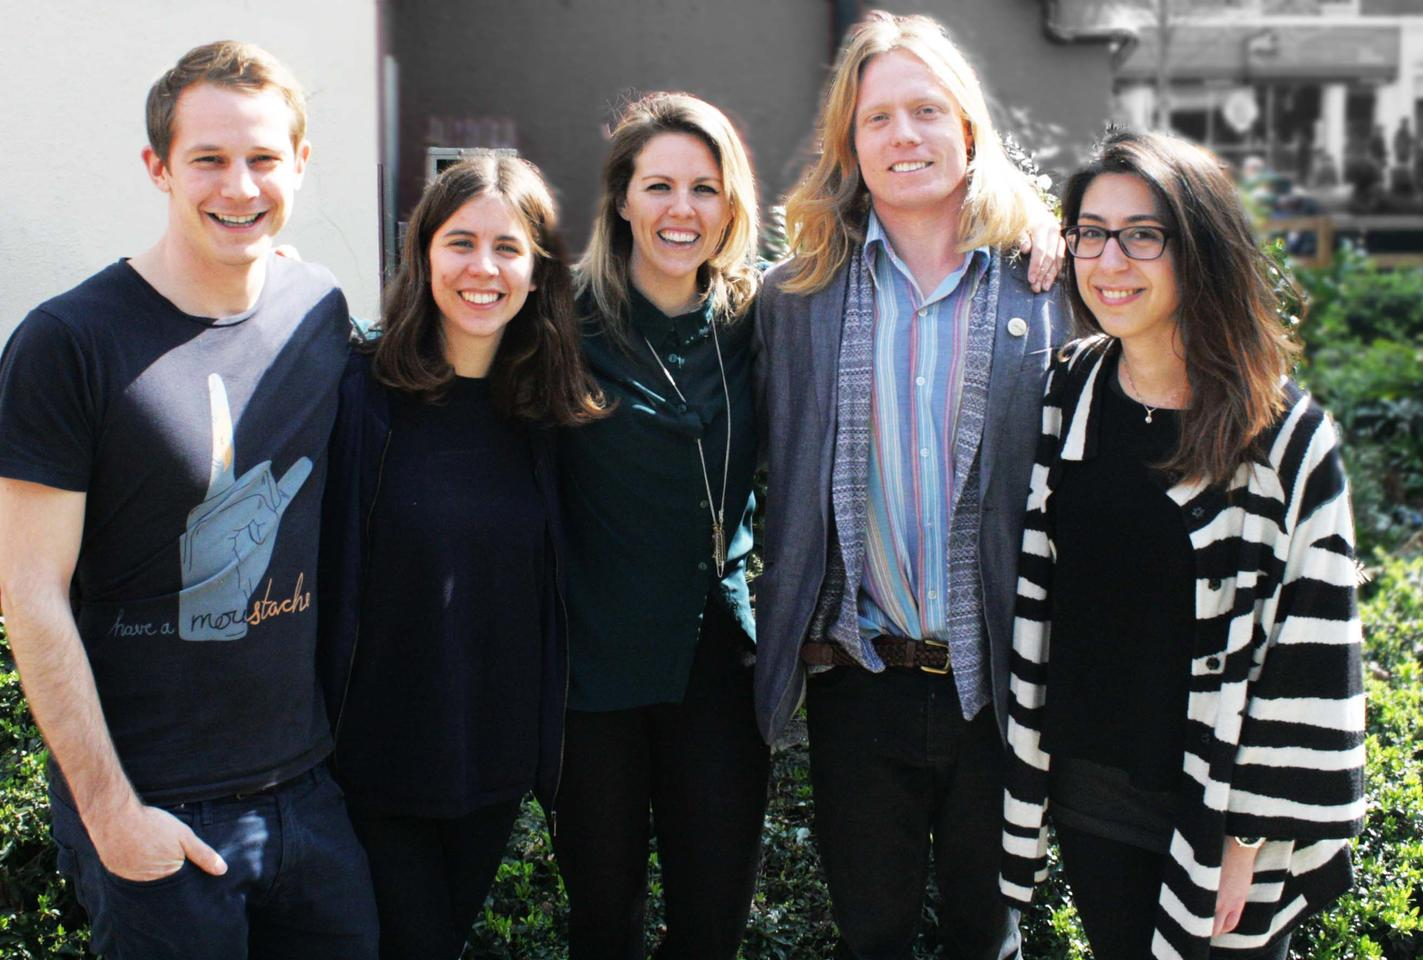 Charlotte Alice Winifred Knight leads a design team of architectural assistants that includes Mina Gospavic, Ross Galtress, and Lauren Shevills, plus artist Edward Crumpton